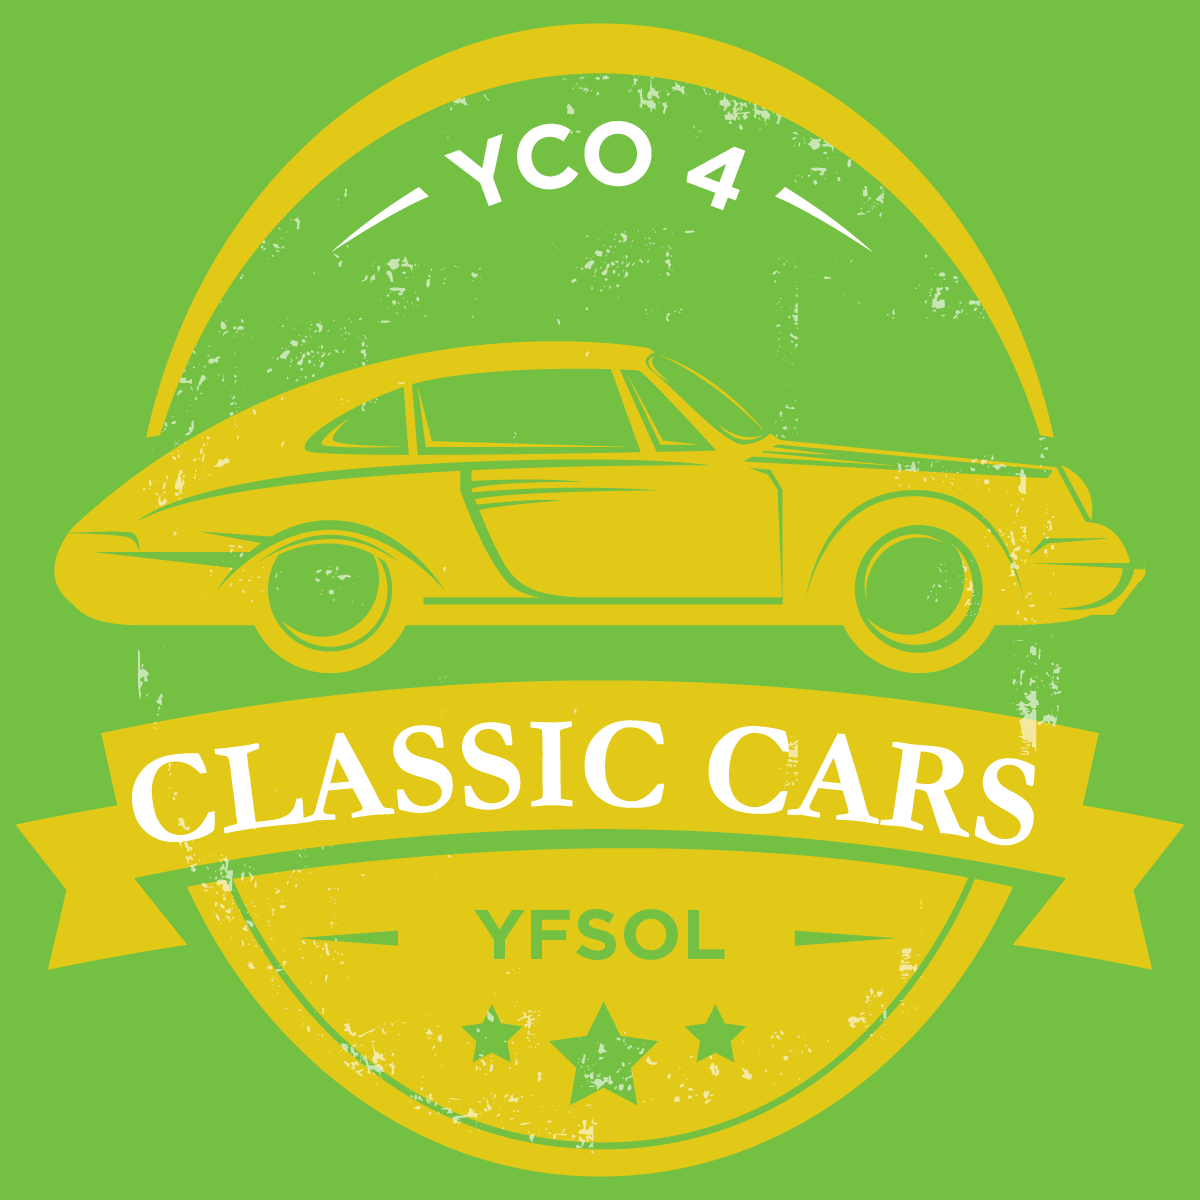 Current Yfsol Classic Opportunity Yco 2 Classic Cars Yachting